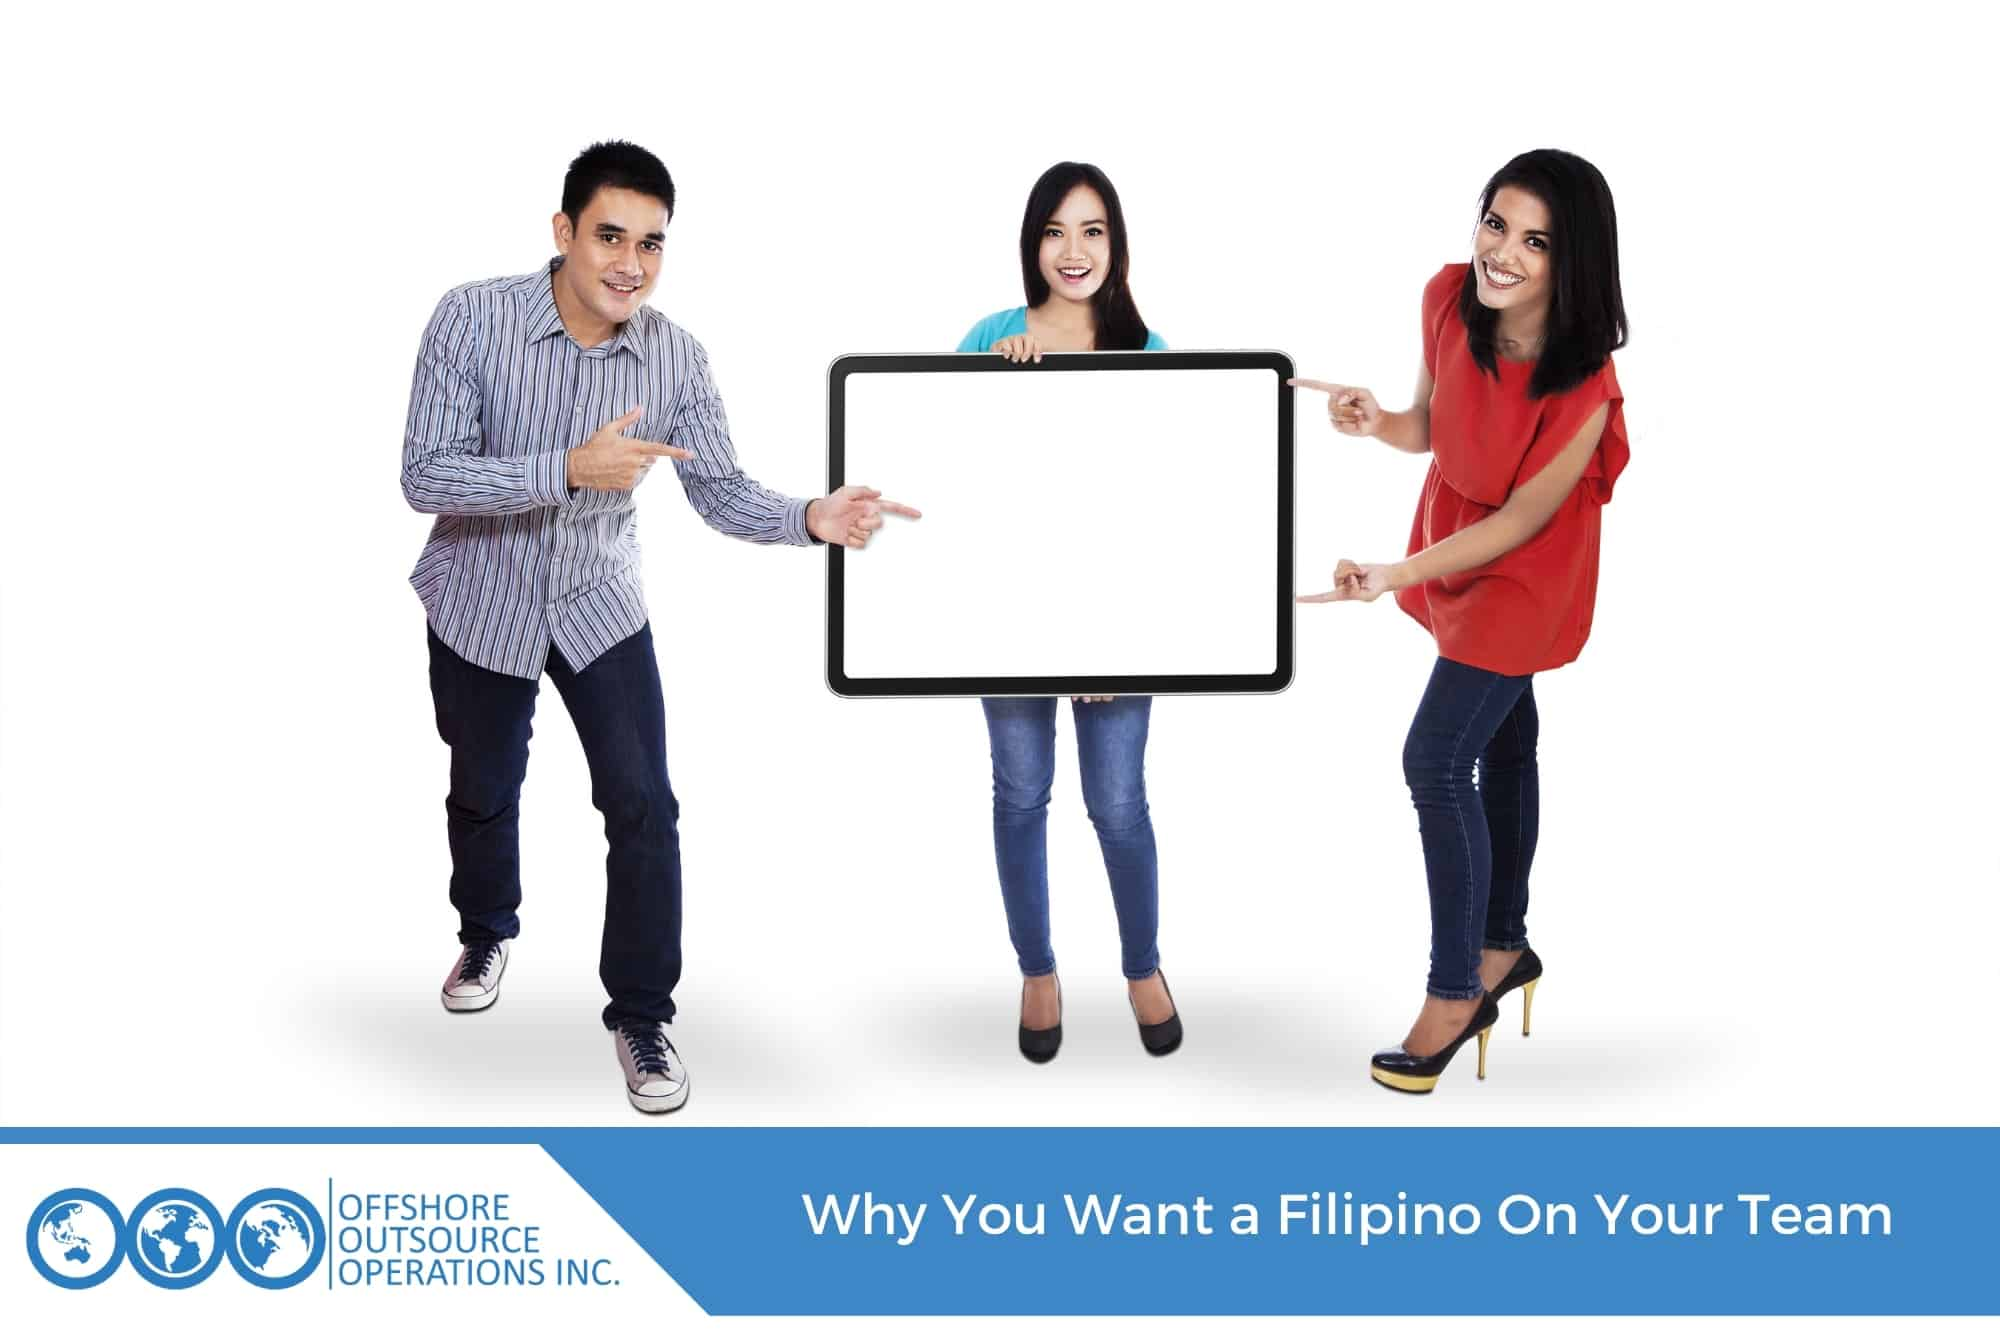 Why You Want a Filipino On Your Team